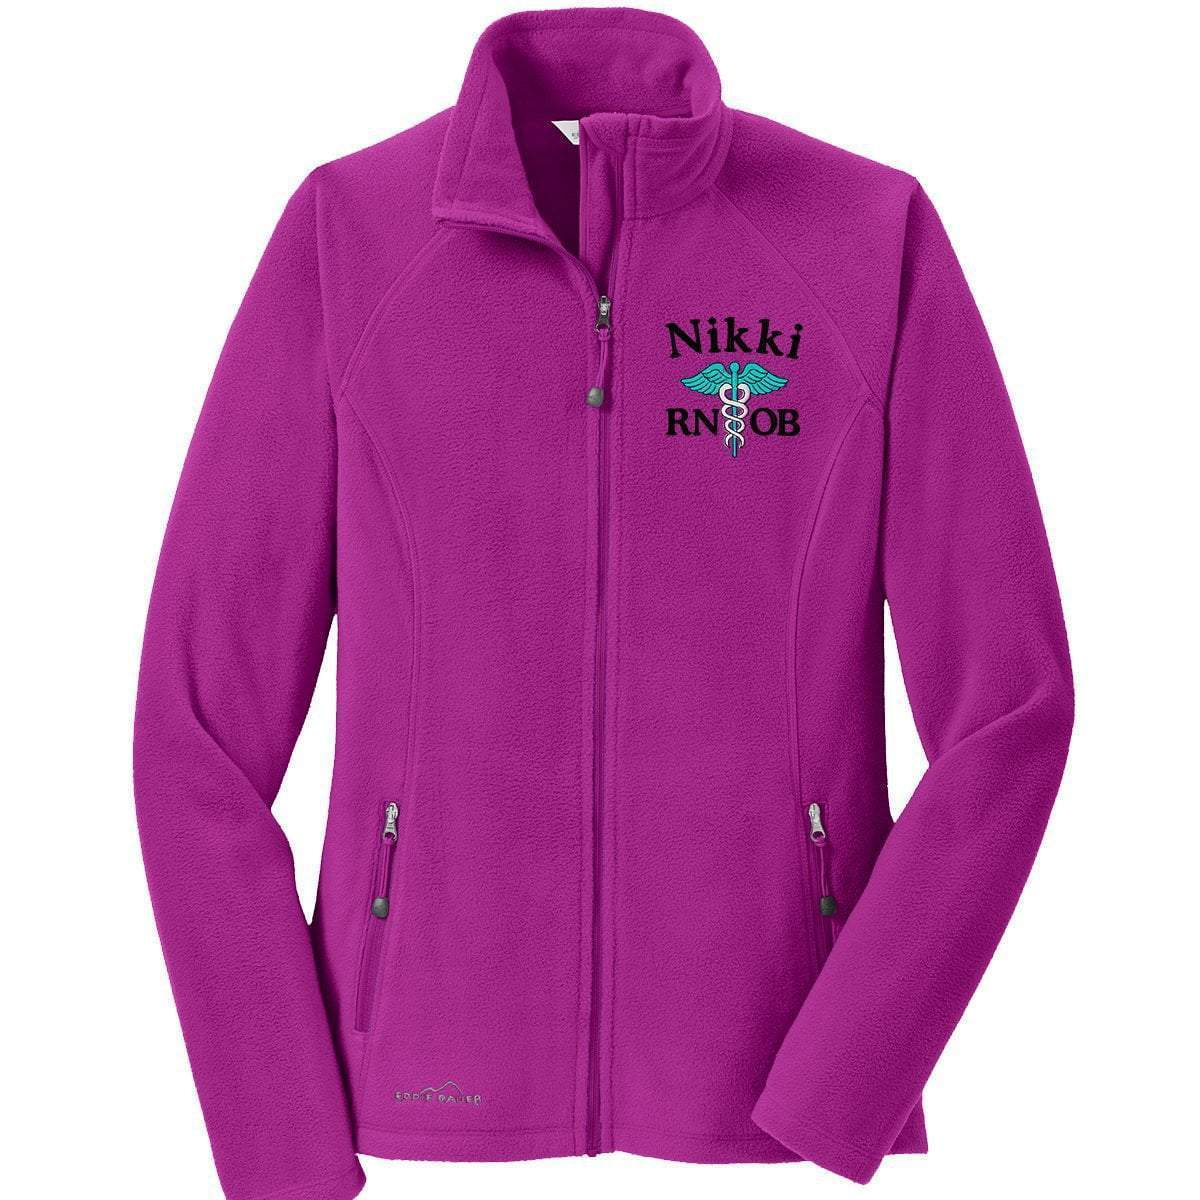 Eddie Bauer jacket Magenta / XS EB225 Eddie Bauer® Ladies Full-Zip Microfleece Jacket